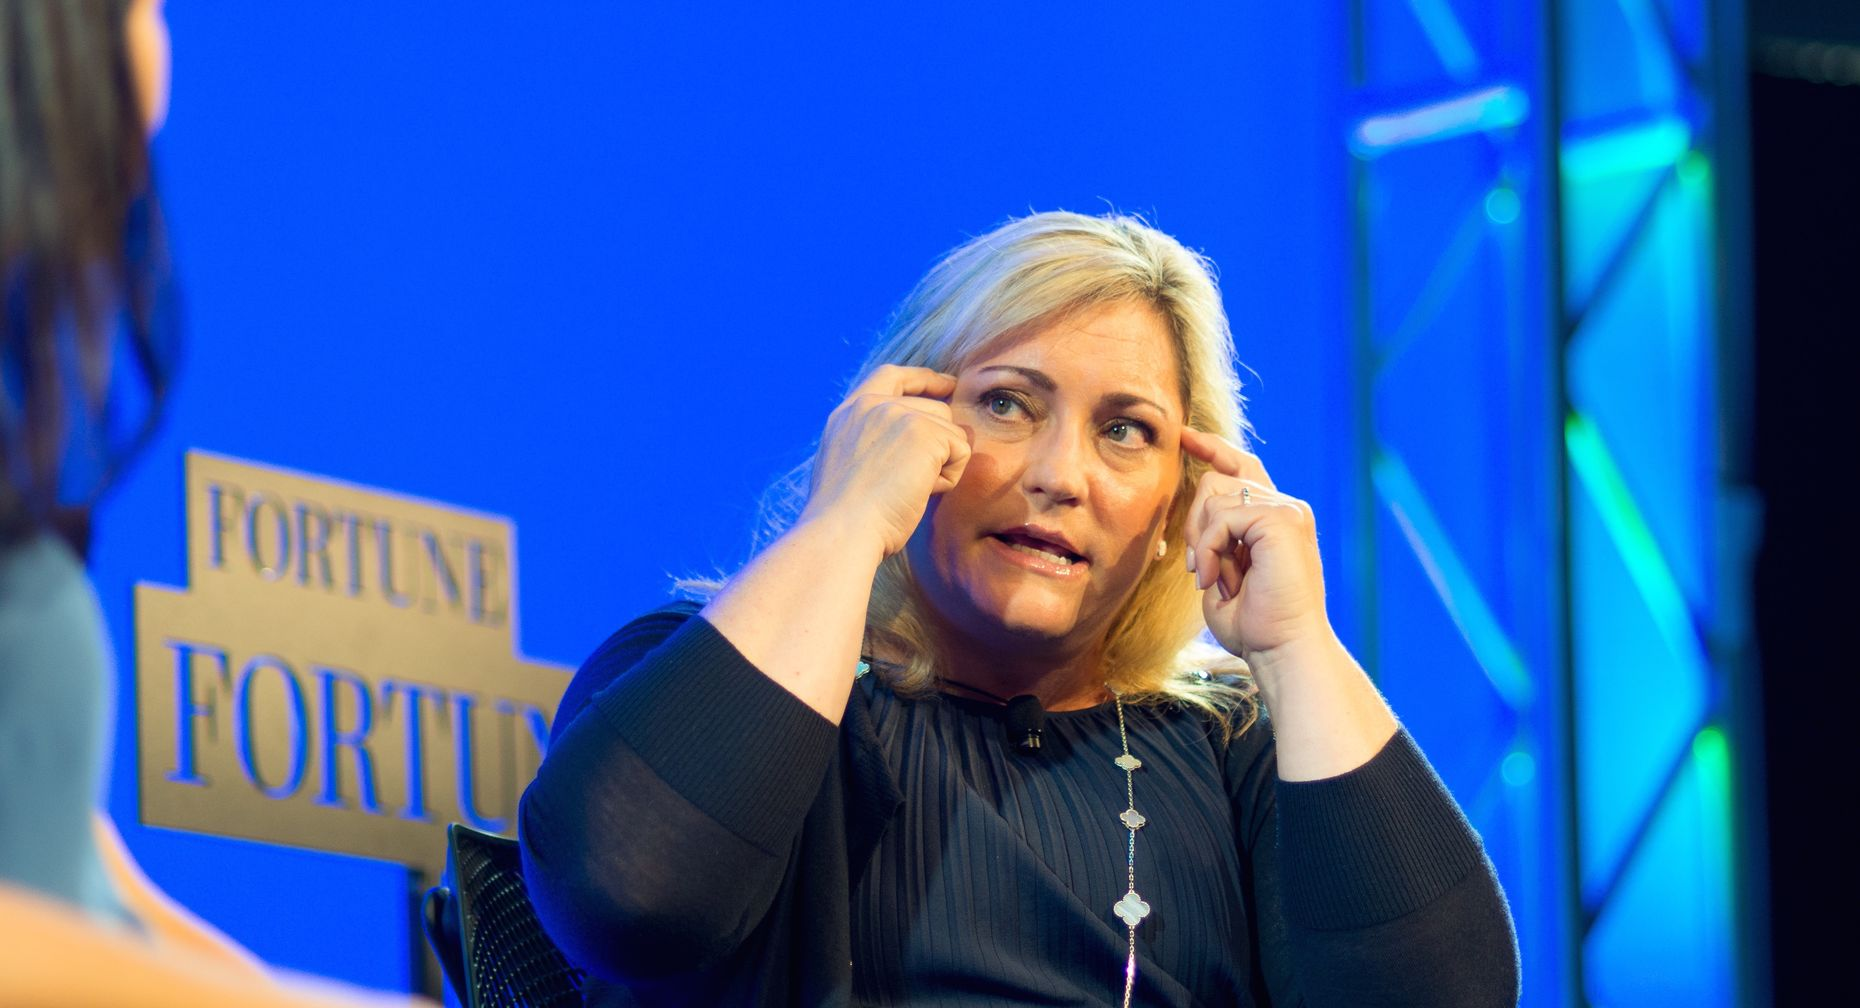 Intel President Renée James at Fortune's Brainstorm conference. Photo by Kevin Moloney.